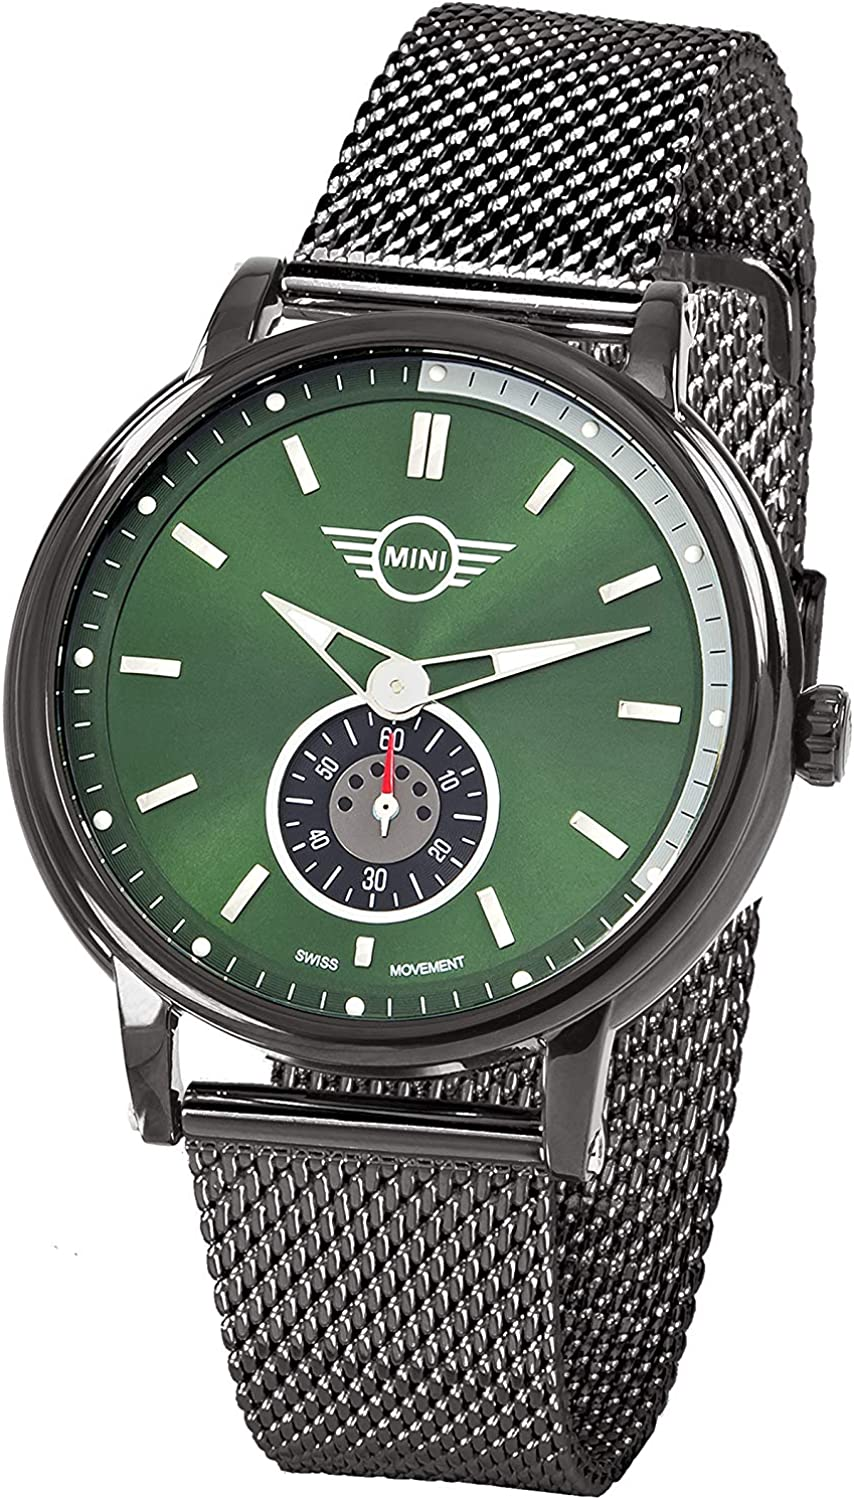 Mini Unisex Adult Analogue 1 year warranty Classic with Stainless Quartz Watch S Challenge the lowest price of Japan